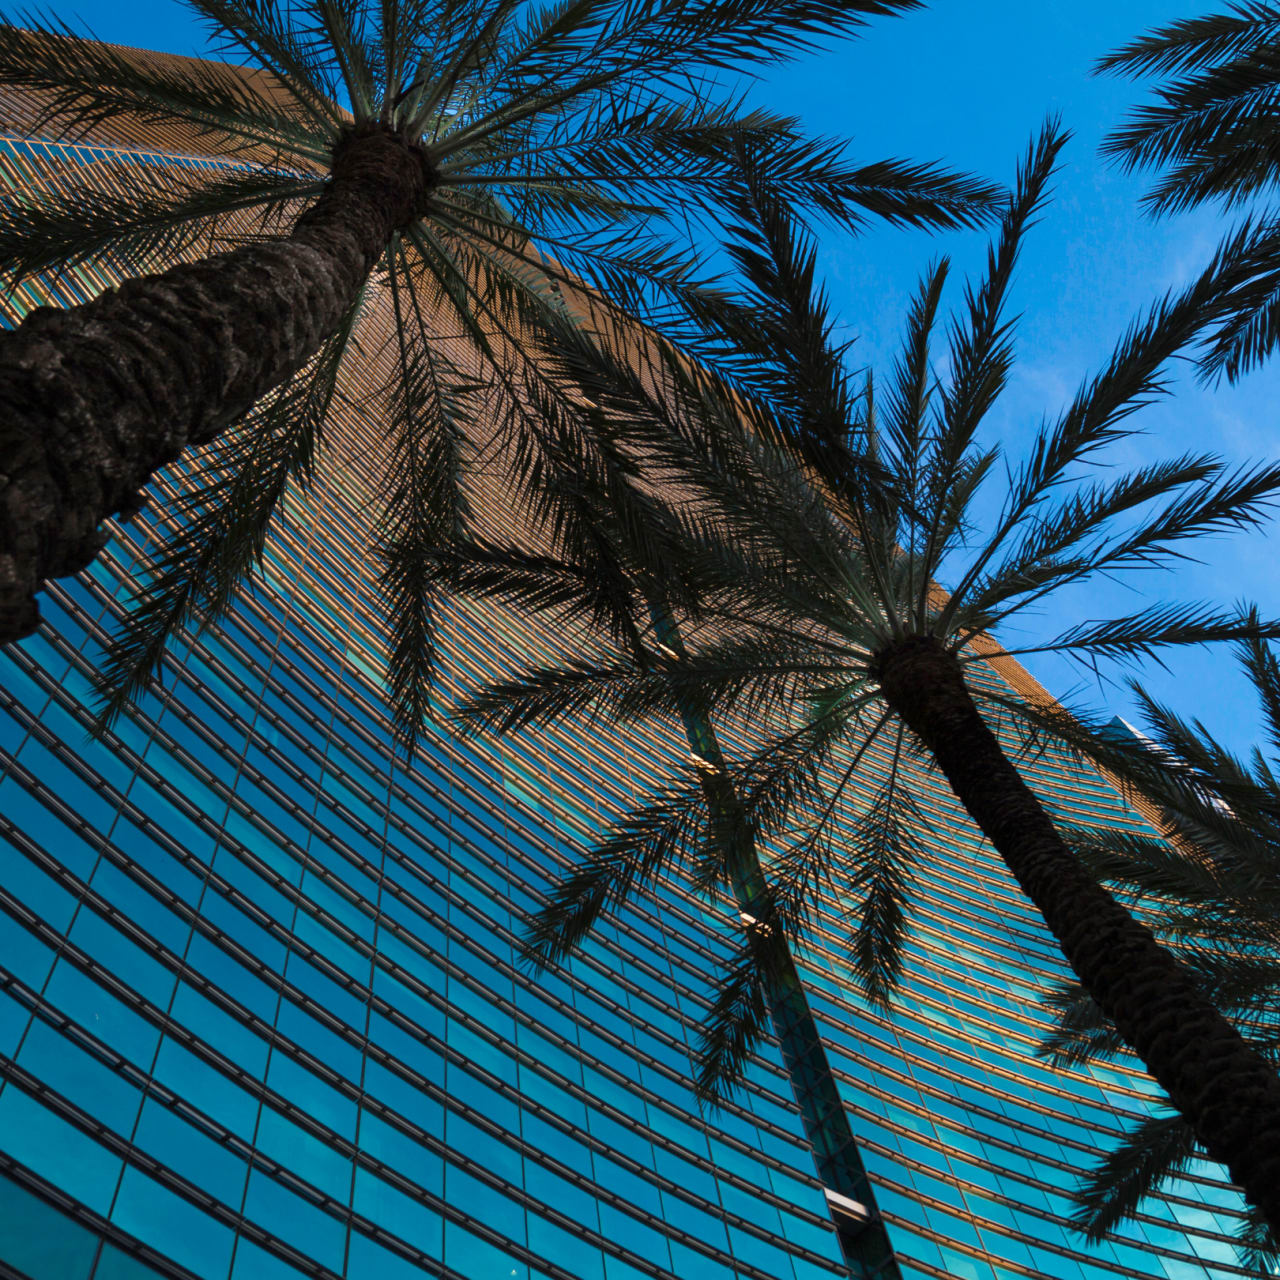 Miami continues to solidify itself as important financial hub